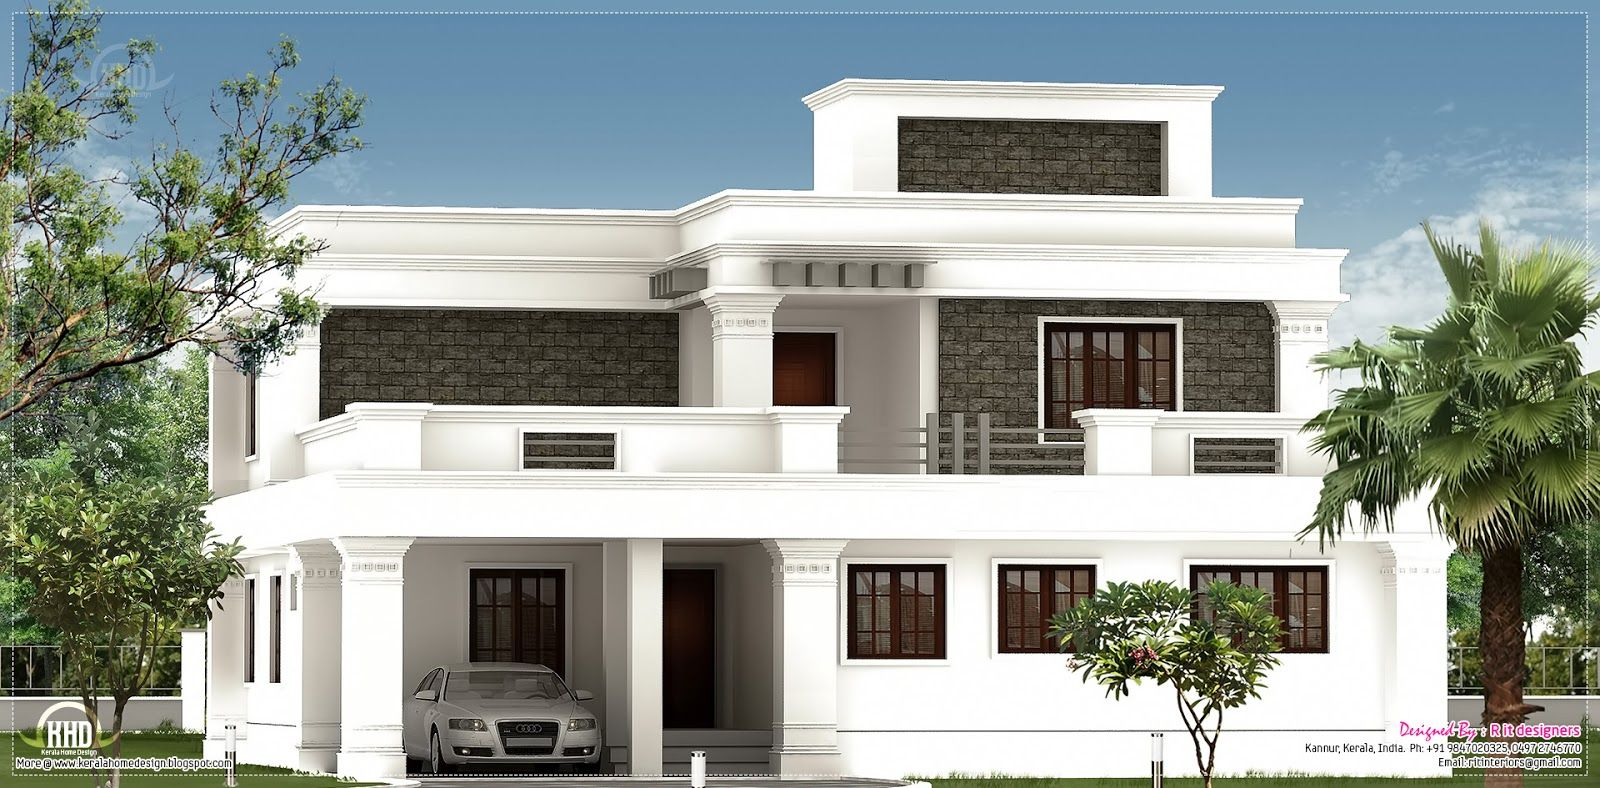 Superior Flat Roof Homes Designs | Flat Roof Villa Exterior In 2400 Sq.feet   Kerala Home  Design .